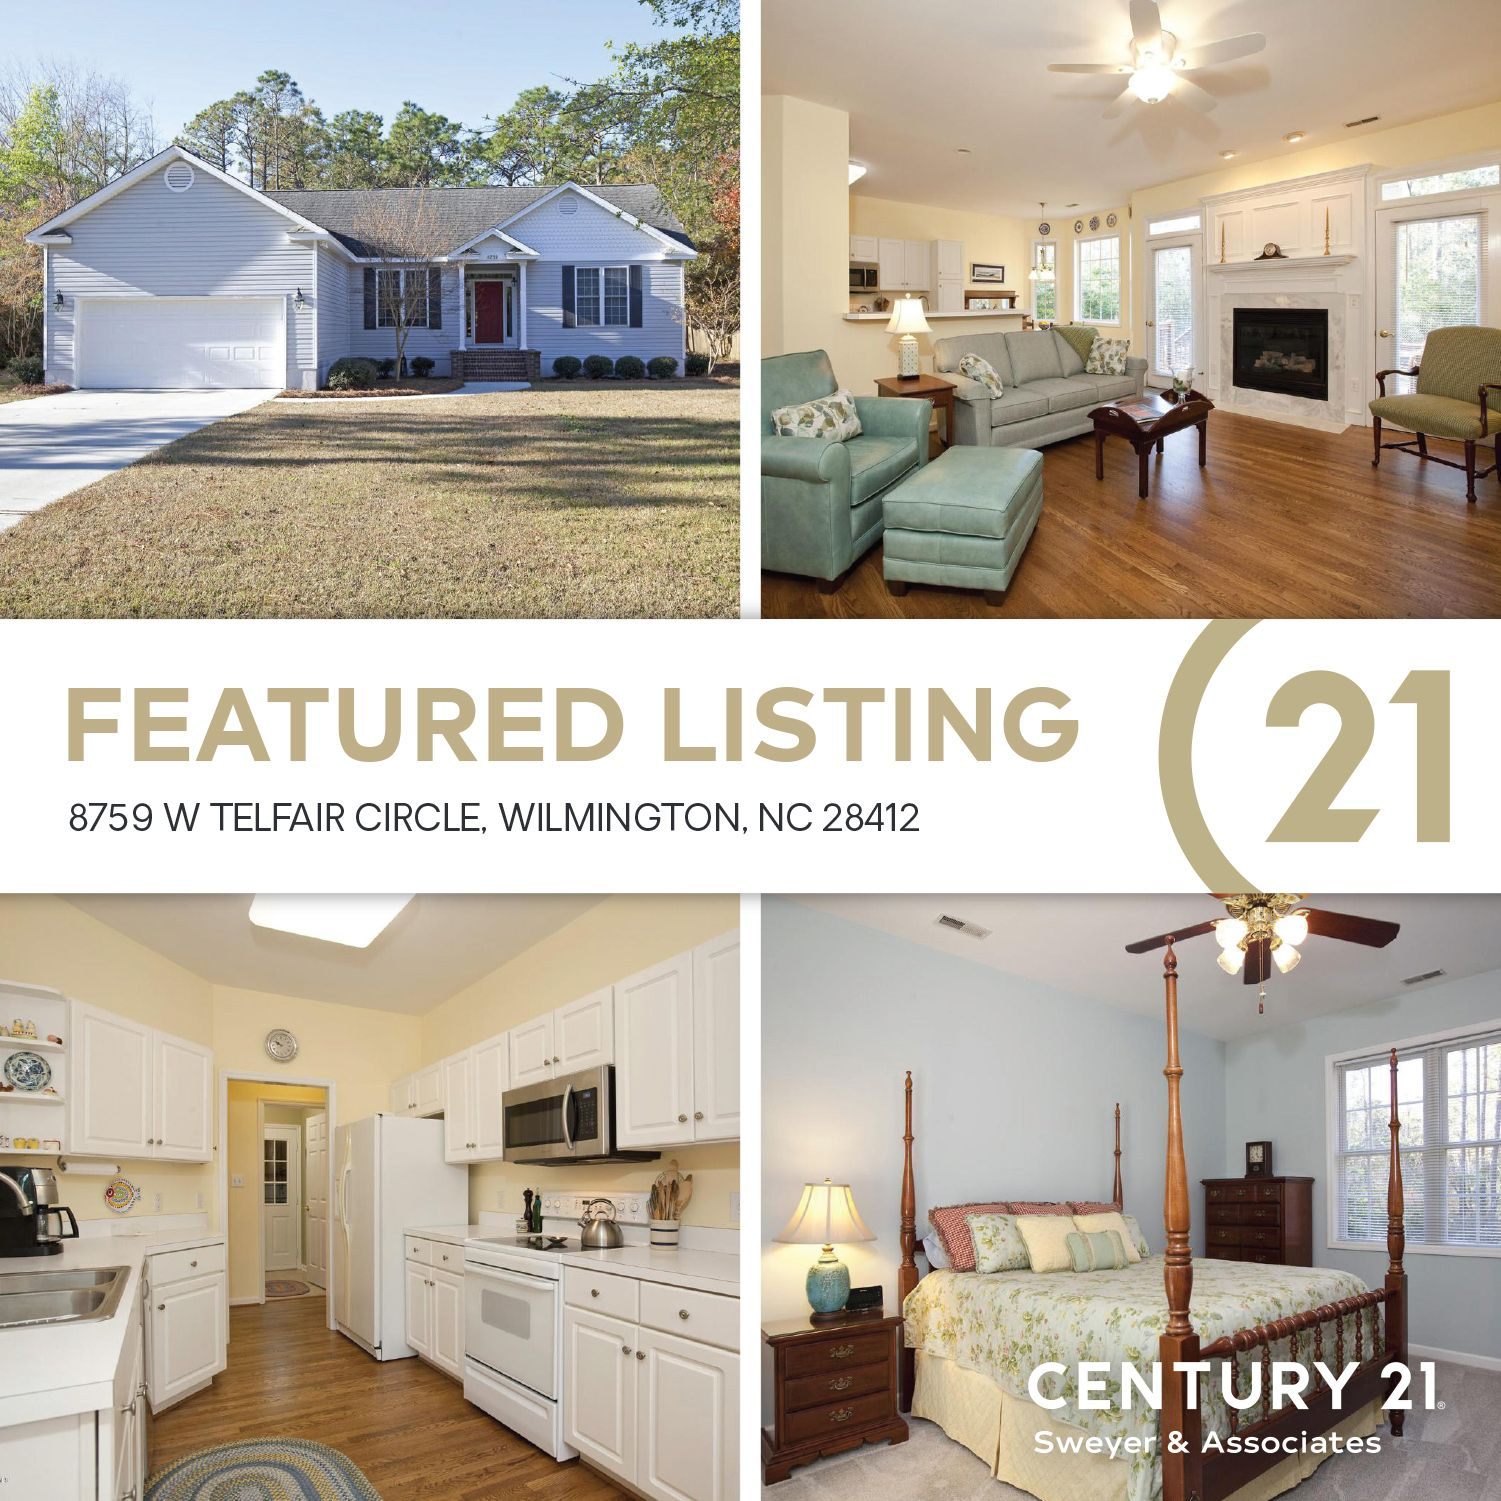 8759 W Telfair Circle, Wilmington, NC 28412 (MLS ...